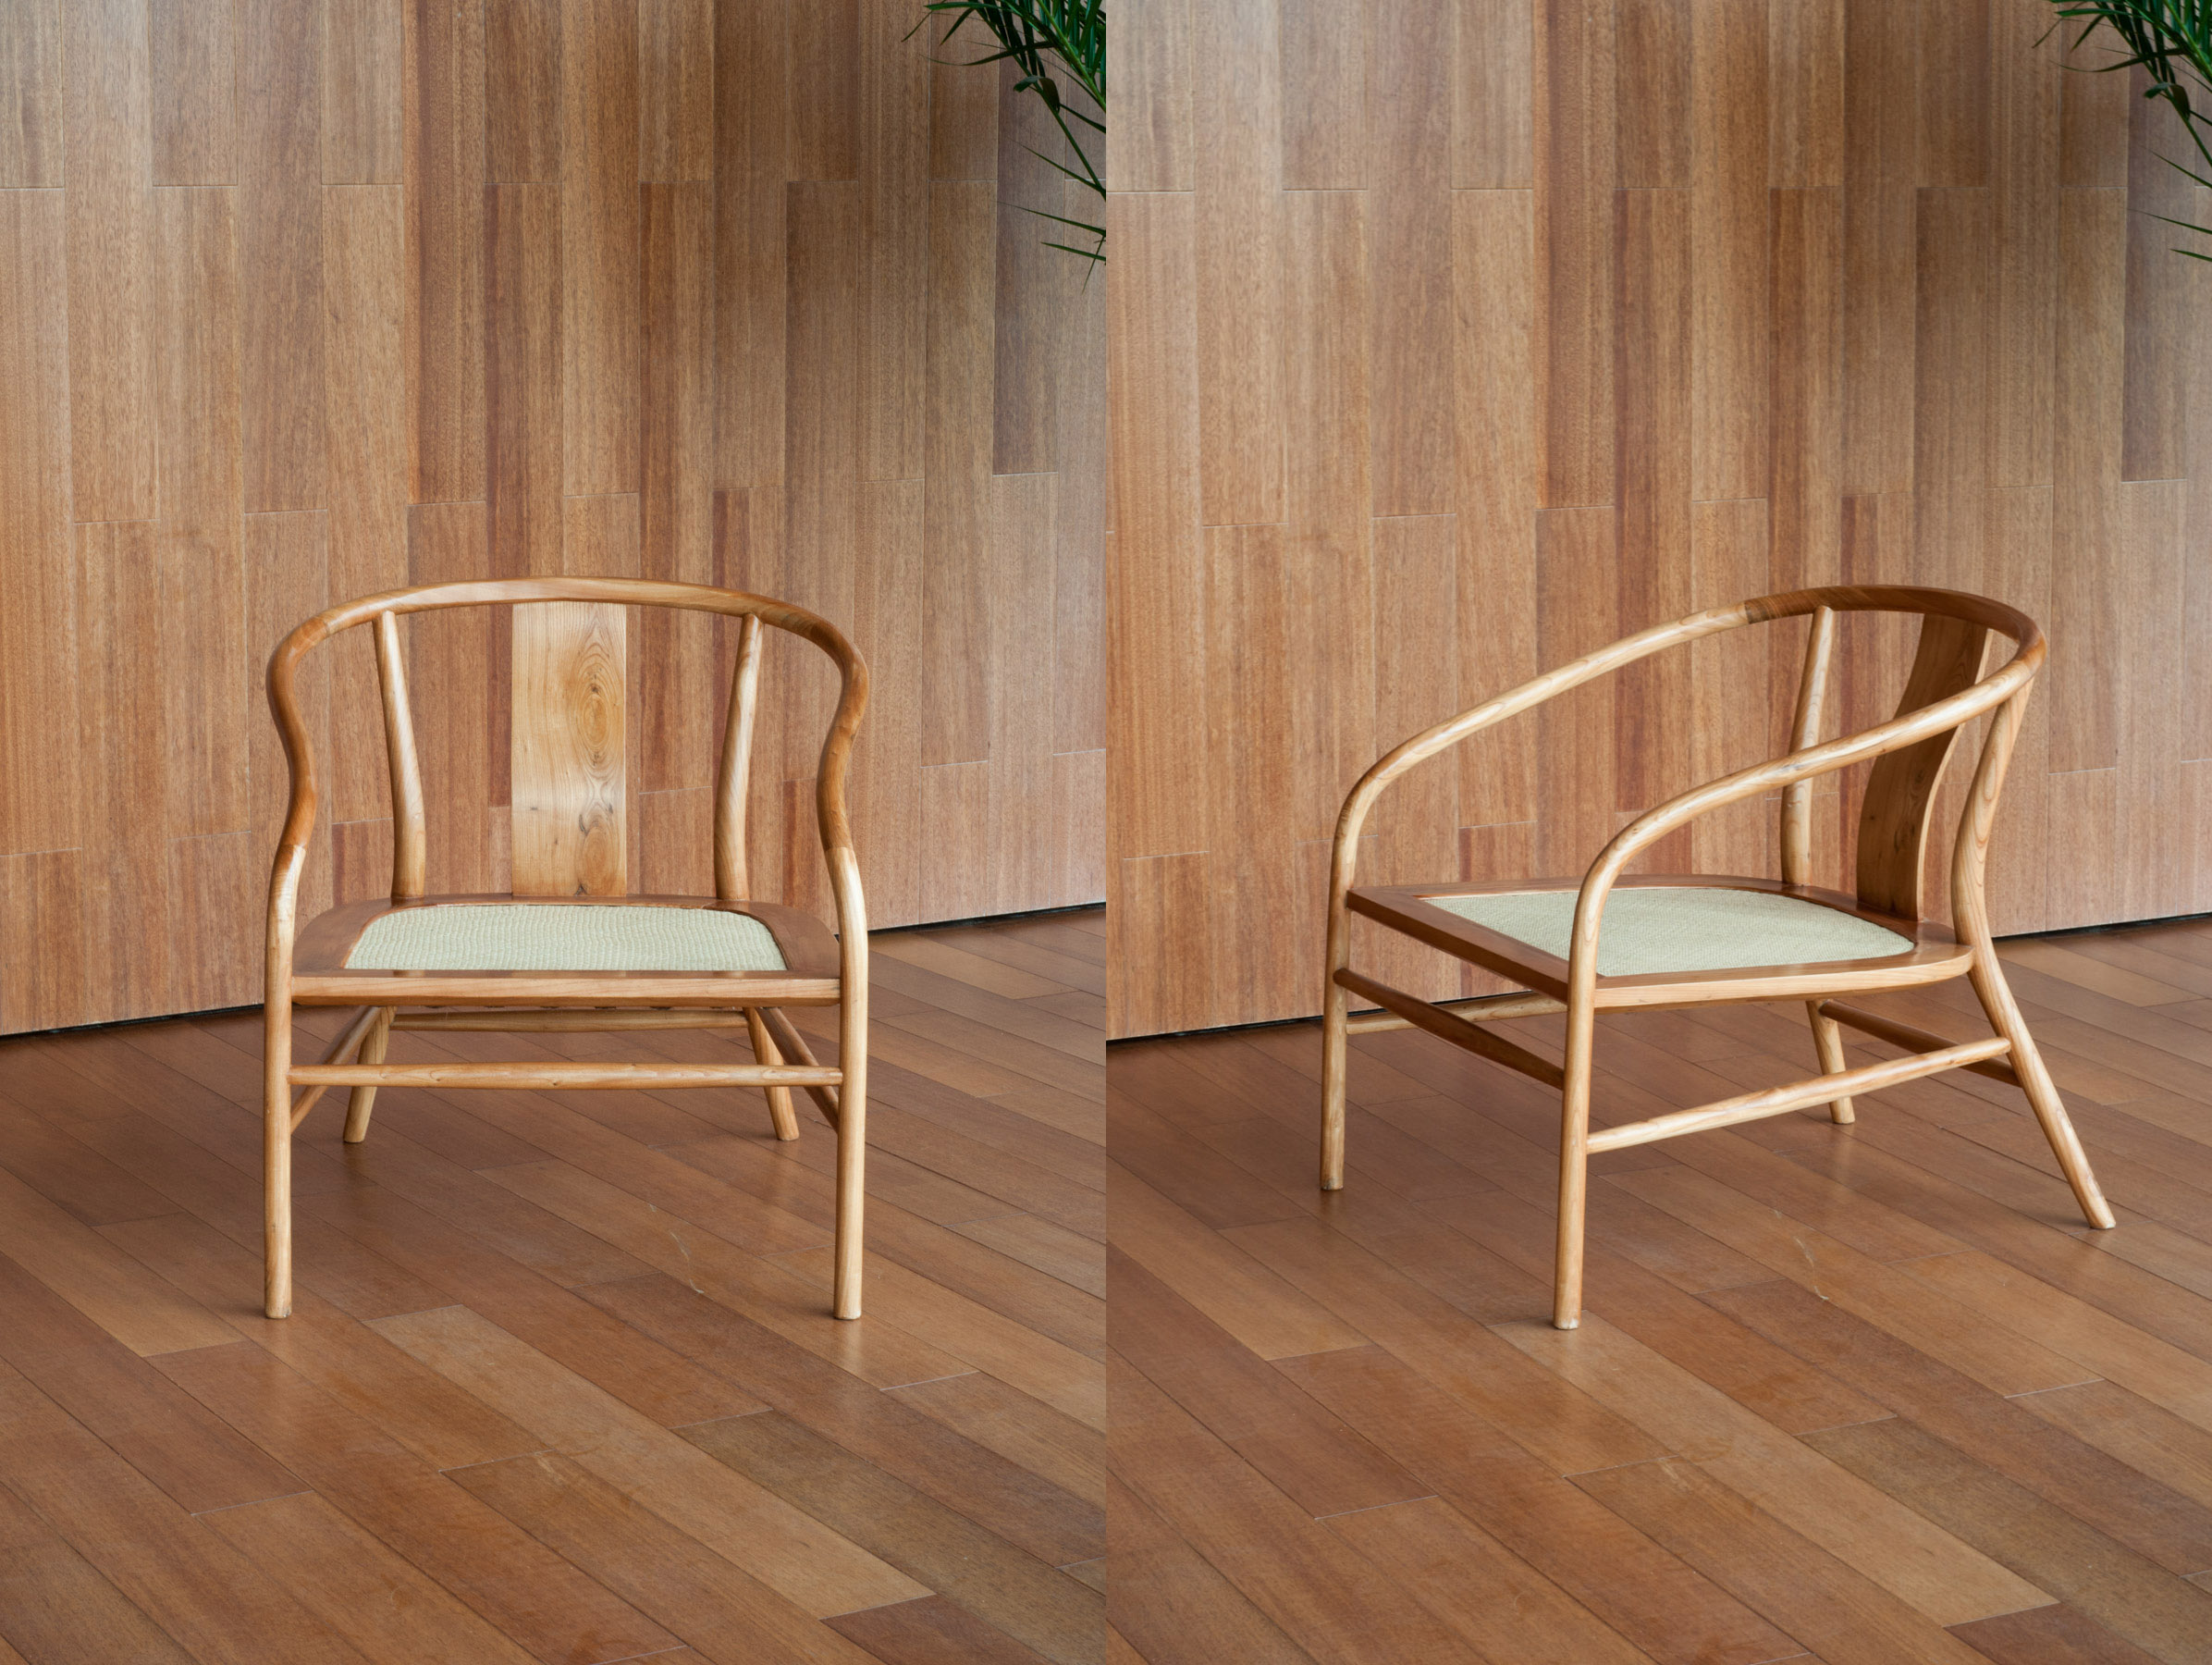 The low armchair is made with traditional technique and the seat is of woven bamboo with natural hemp webbing underneath for comfort.